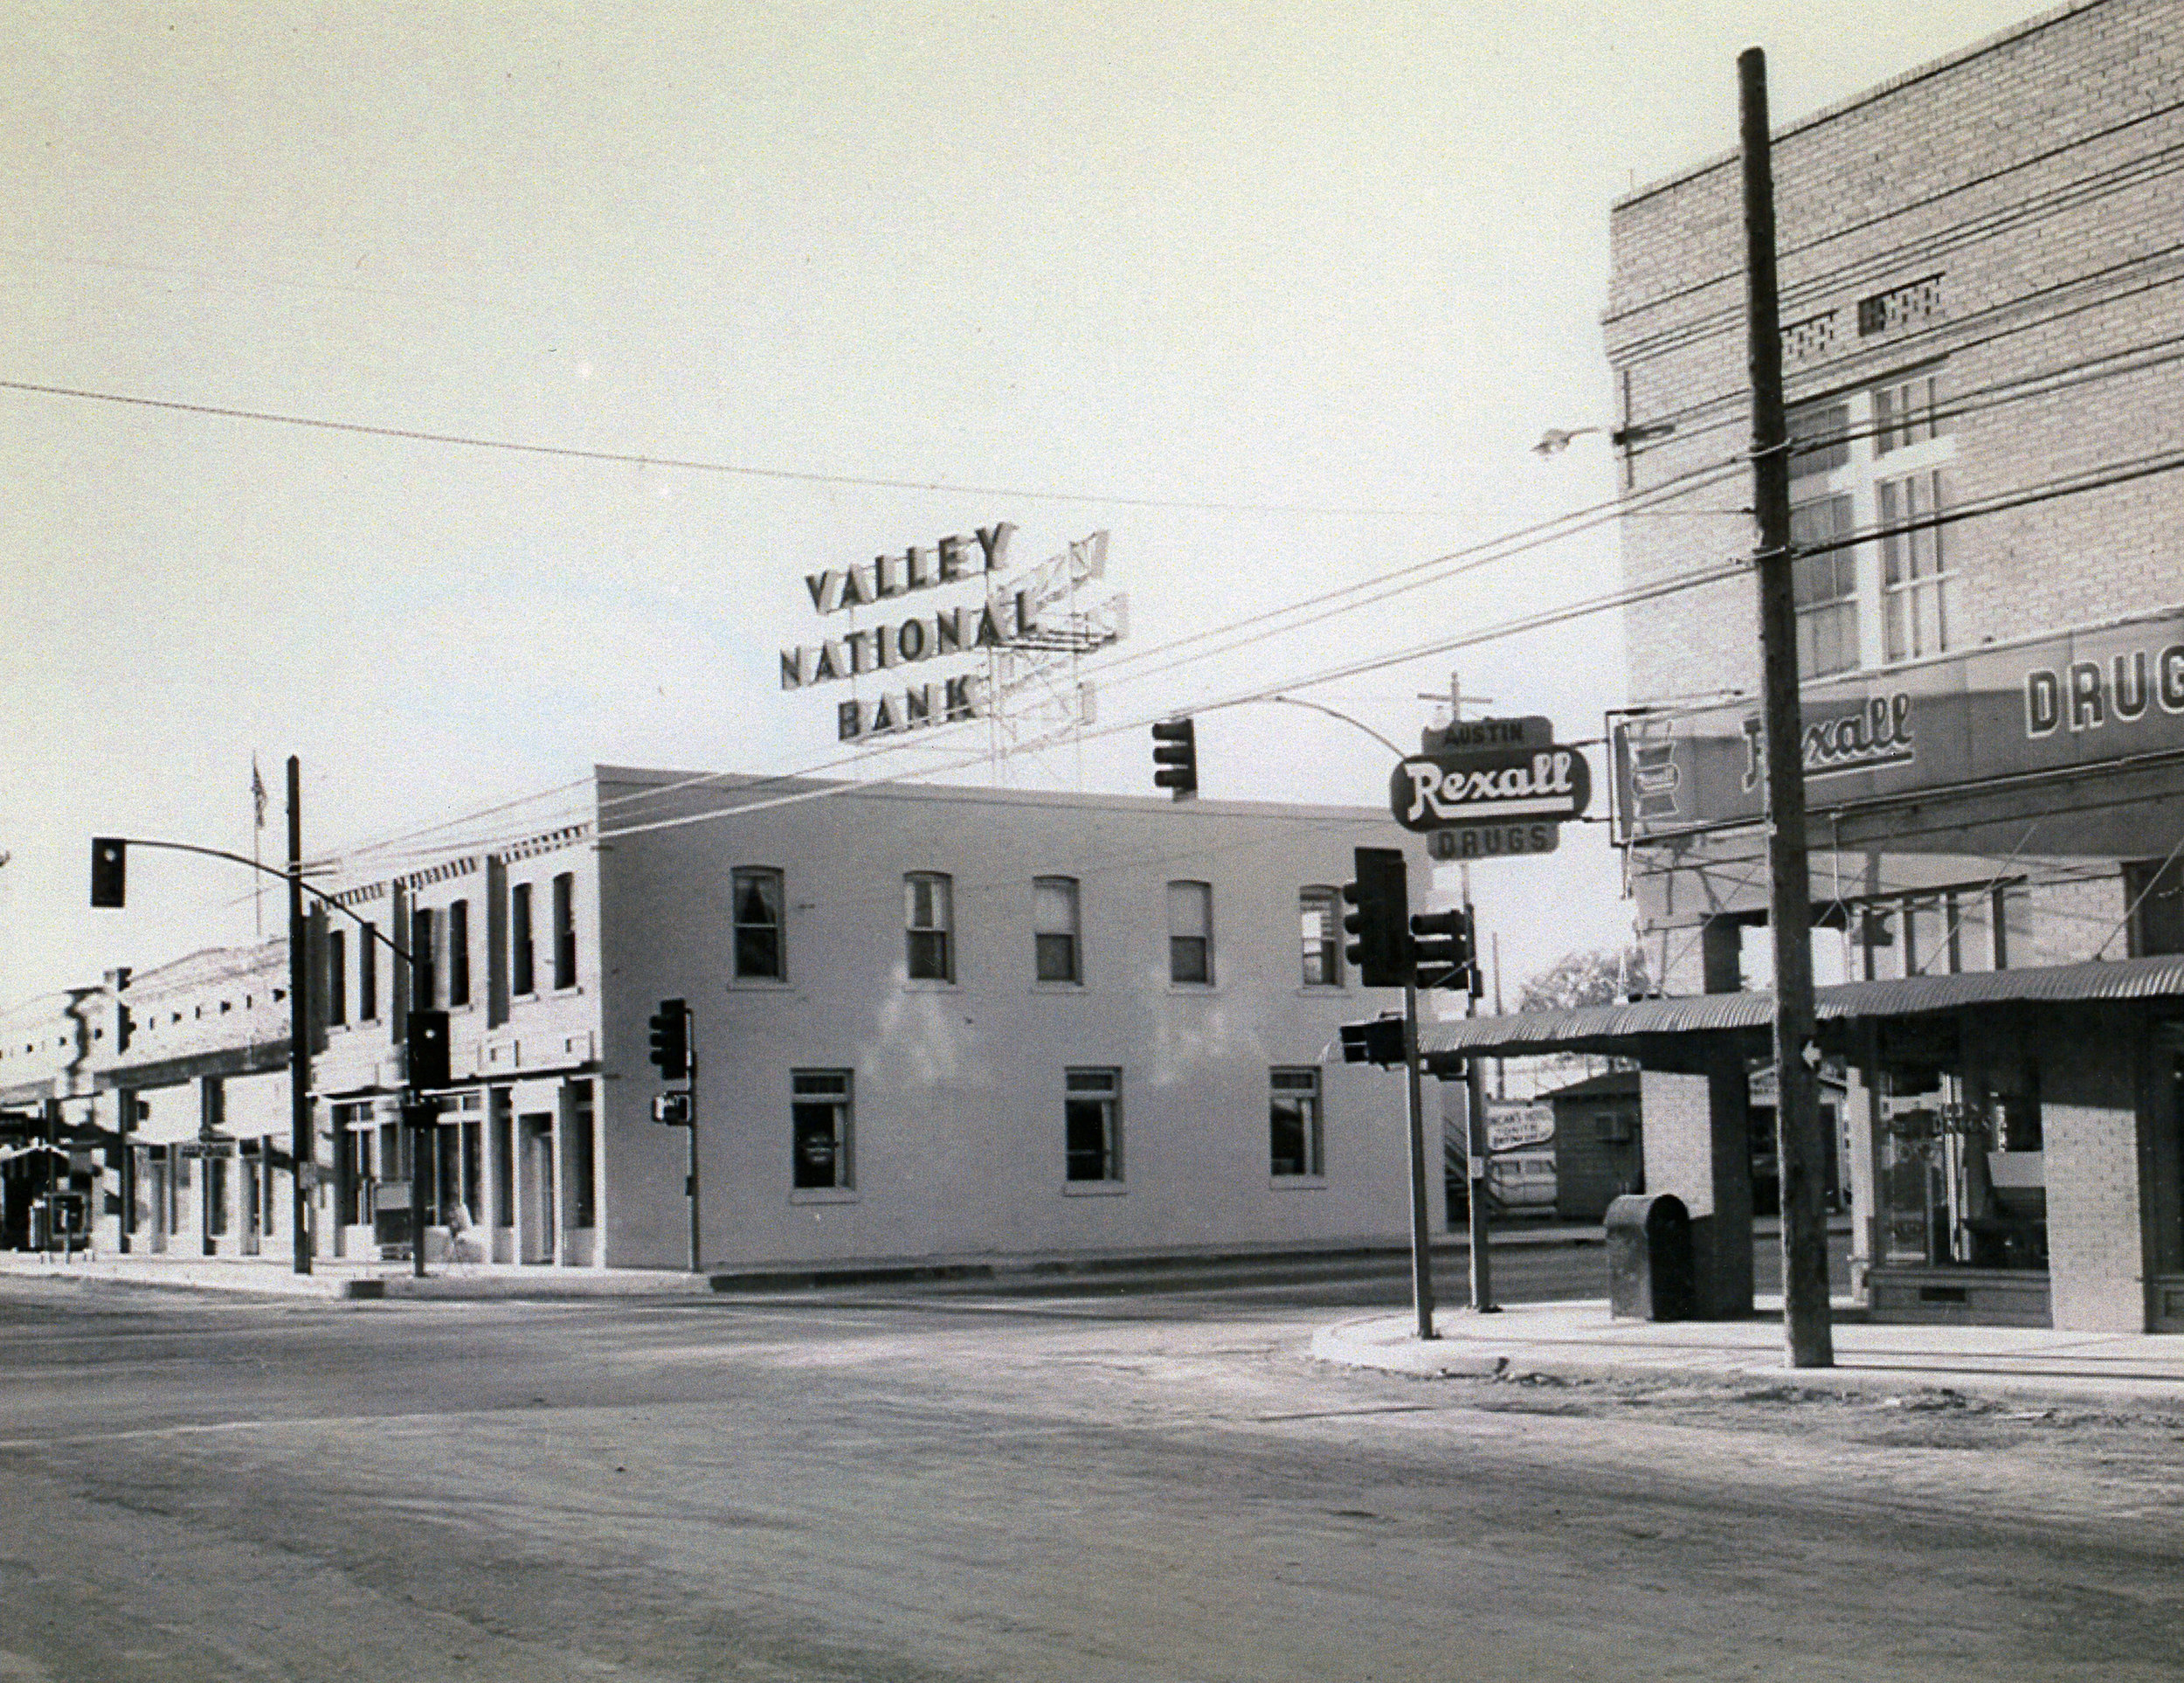 RIGGS BANK BUILDING AFTER ITS SALE BY THE RIGGS FAMILY IN 1933.   PHOTOGRAPH TAKEN APPROXIMATELY 1960 / OWNER WAS VALLEY NATIONAL BANK